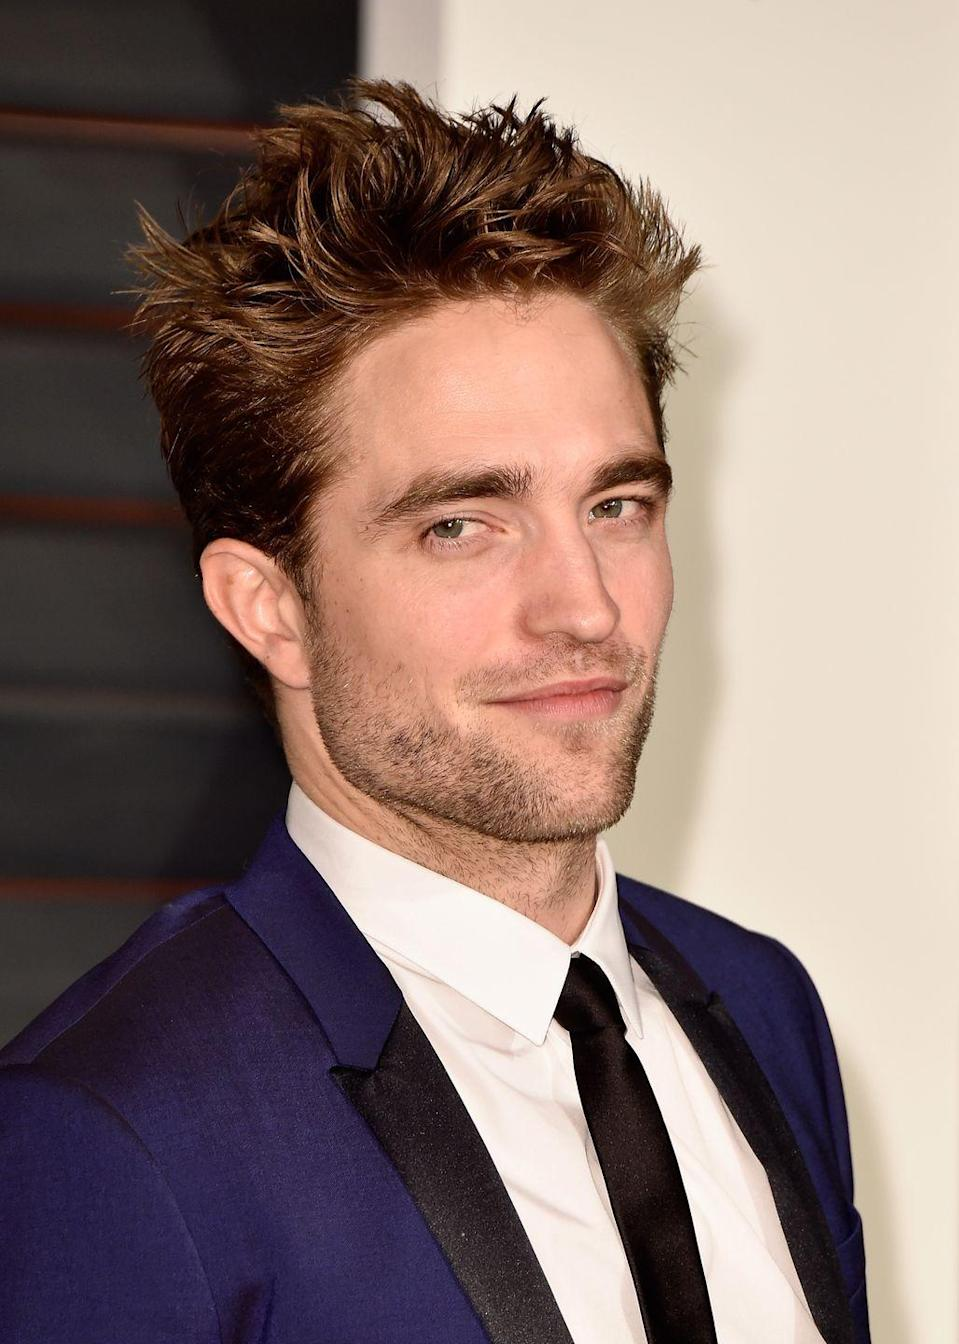 """<p>Robert Pattinson hates <em>Twilight</em>, hates Edward, and hates how everyone likes both. (P.S. There's even <a href=""""http://robertpattinsonhatingtwilight.tumblr.com/ """" rel=""""nofollow noopener"""" target=""""_blank"""" data-ylk=""""slk:a Tumblr devoted"""" class=""""link rapid-noclick-resp"""">a Tumblr devoted</a> to his interviews where he has to talk about <em>Twilight</em>, and ultimately makes fun of it.) Perhaps the best quote: """"He's the most ridiculous person...the more I read the script, the more I hated this guy...Plus, he's a 108 year-old virgin so he's obviously got some issues there.""""</p>"""